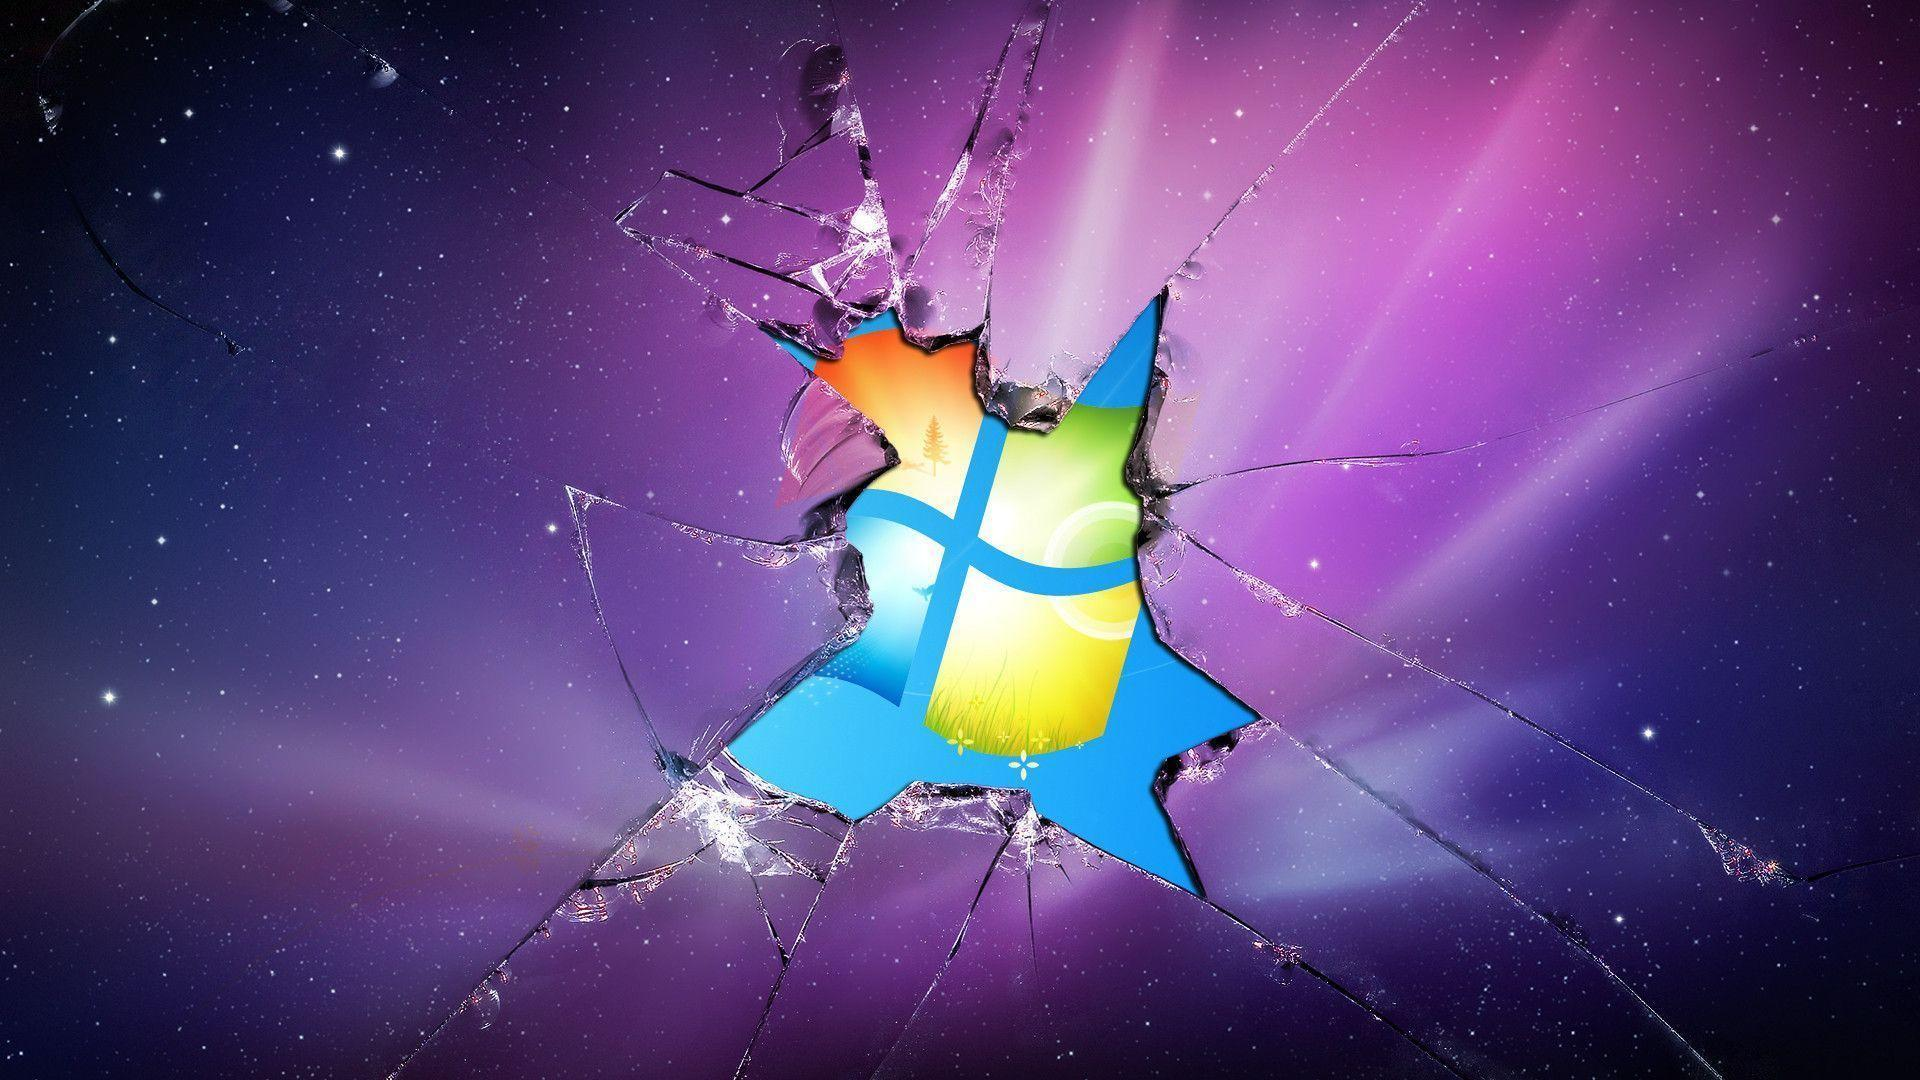 Windows 7 Broken Screen HD Image Wallpapers